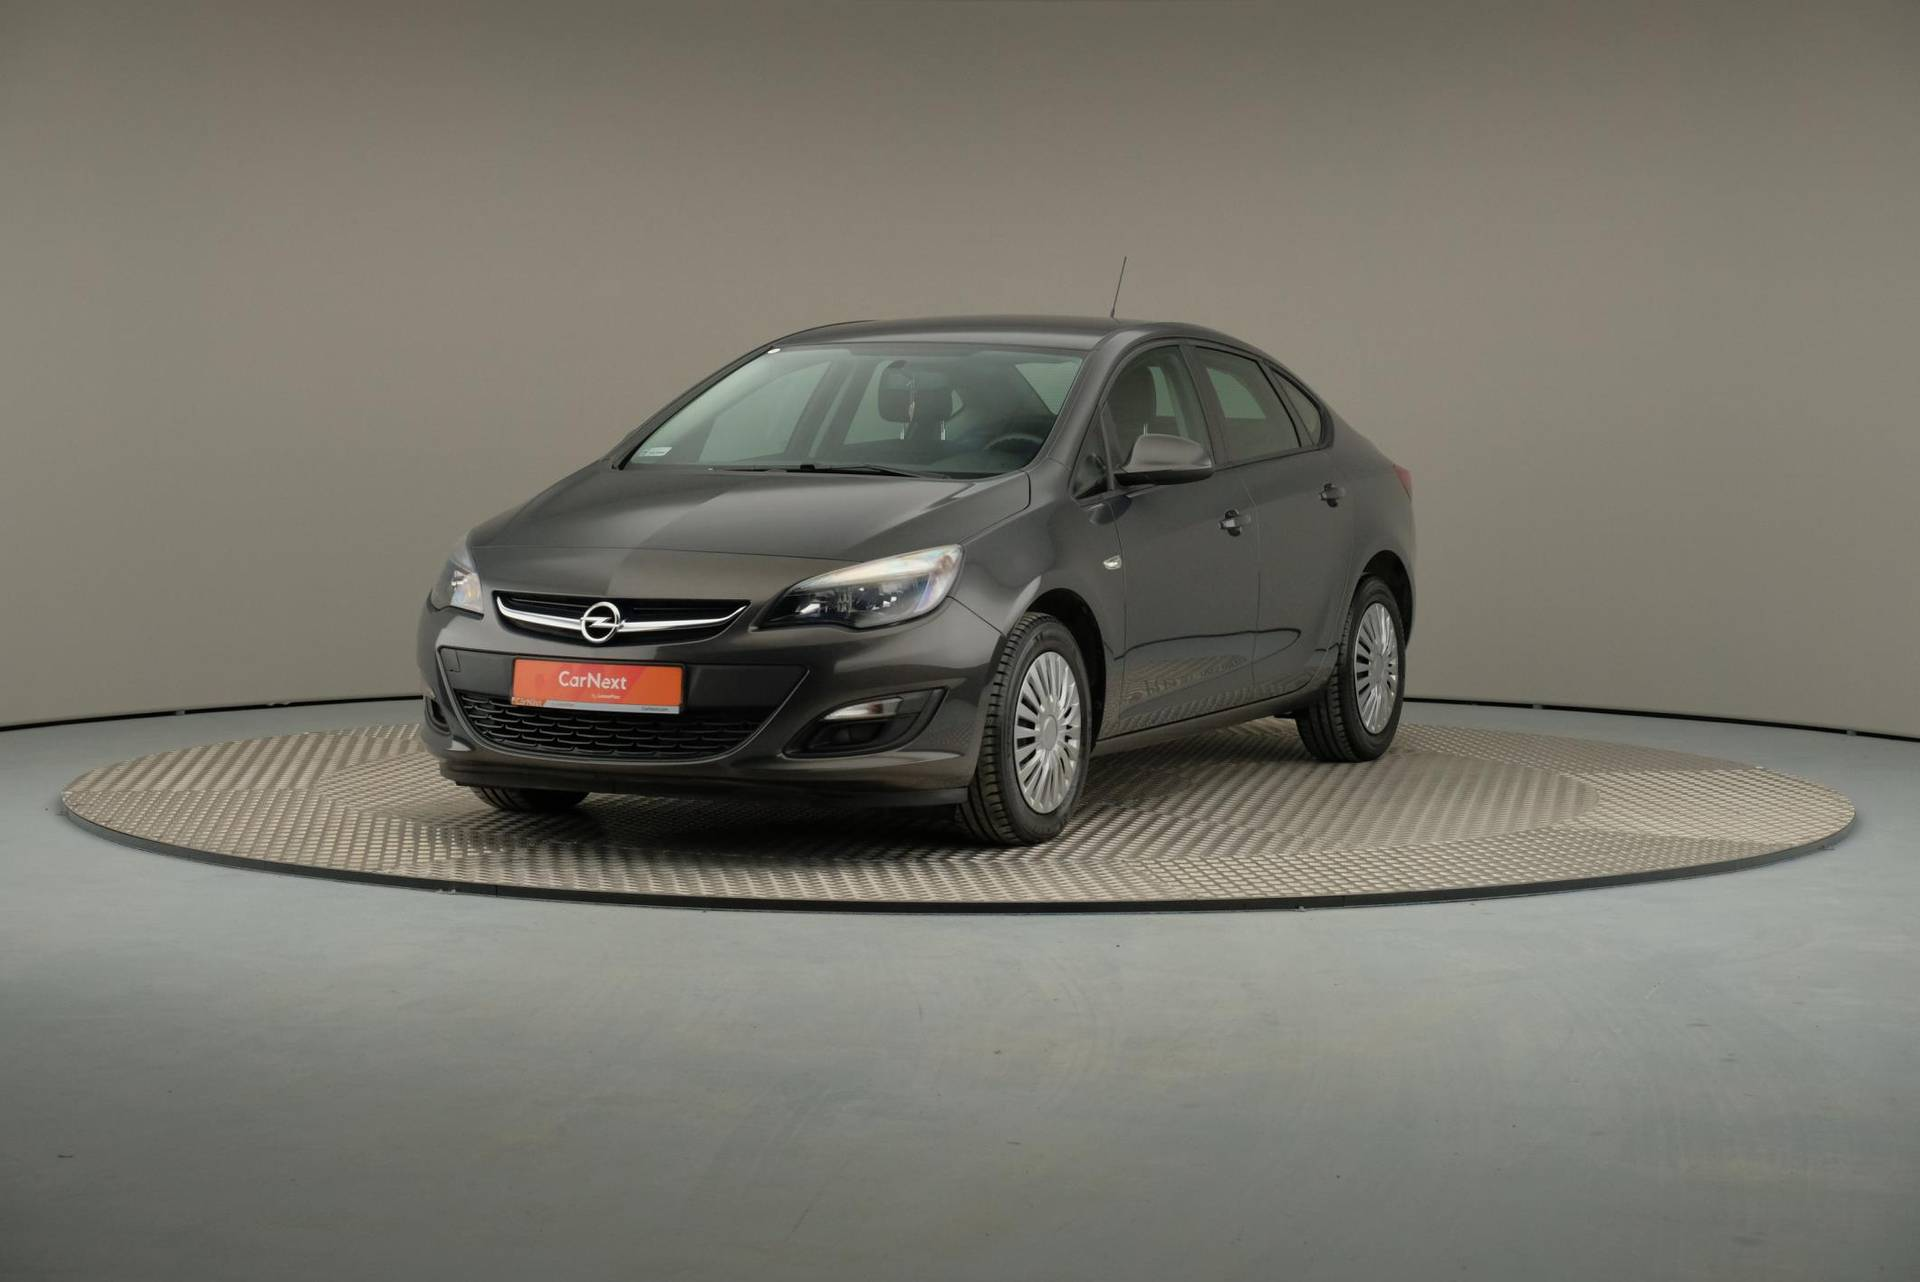 Opel Astra Astra 1.6 Twinport 115km, 360-image34